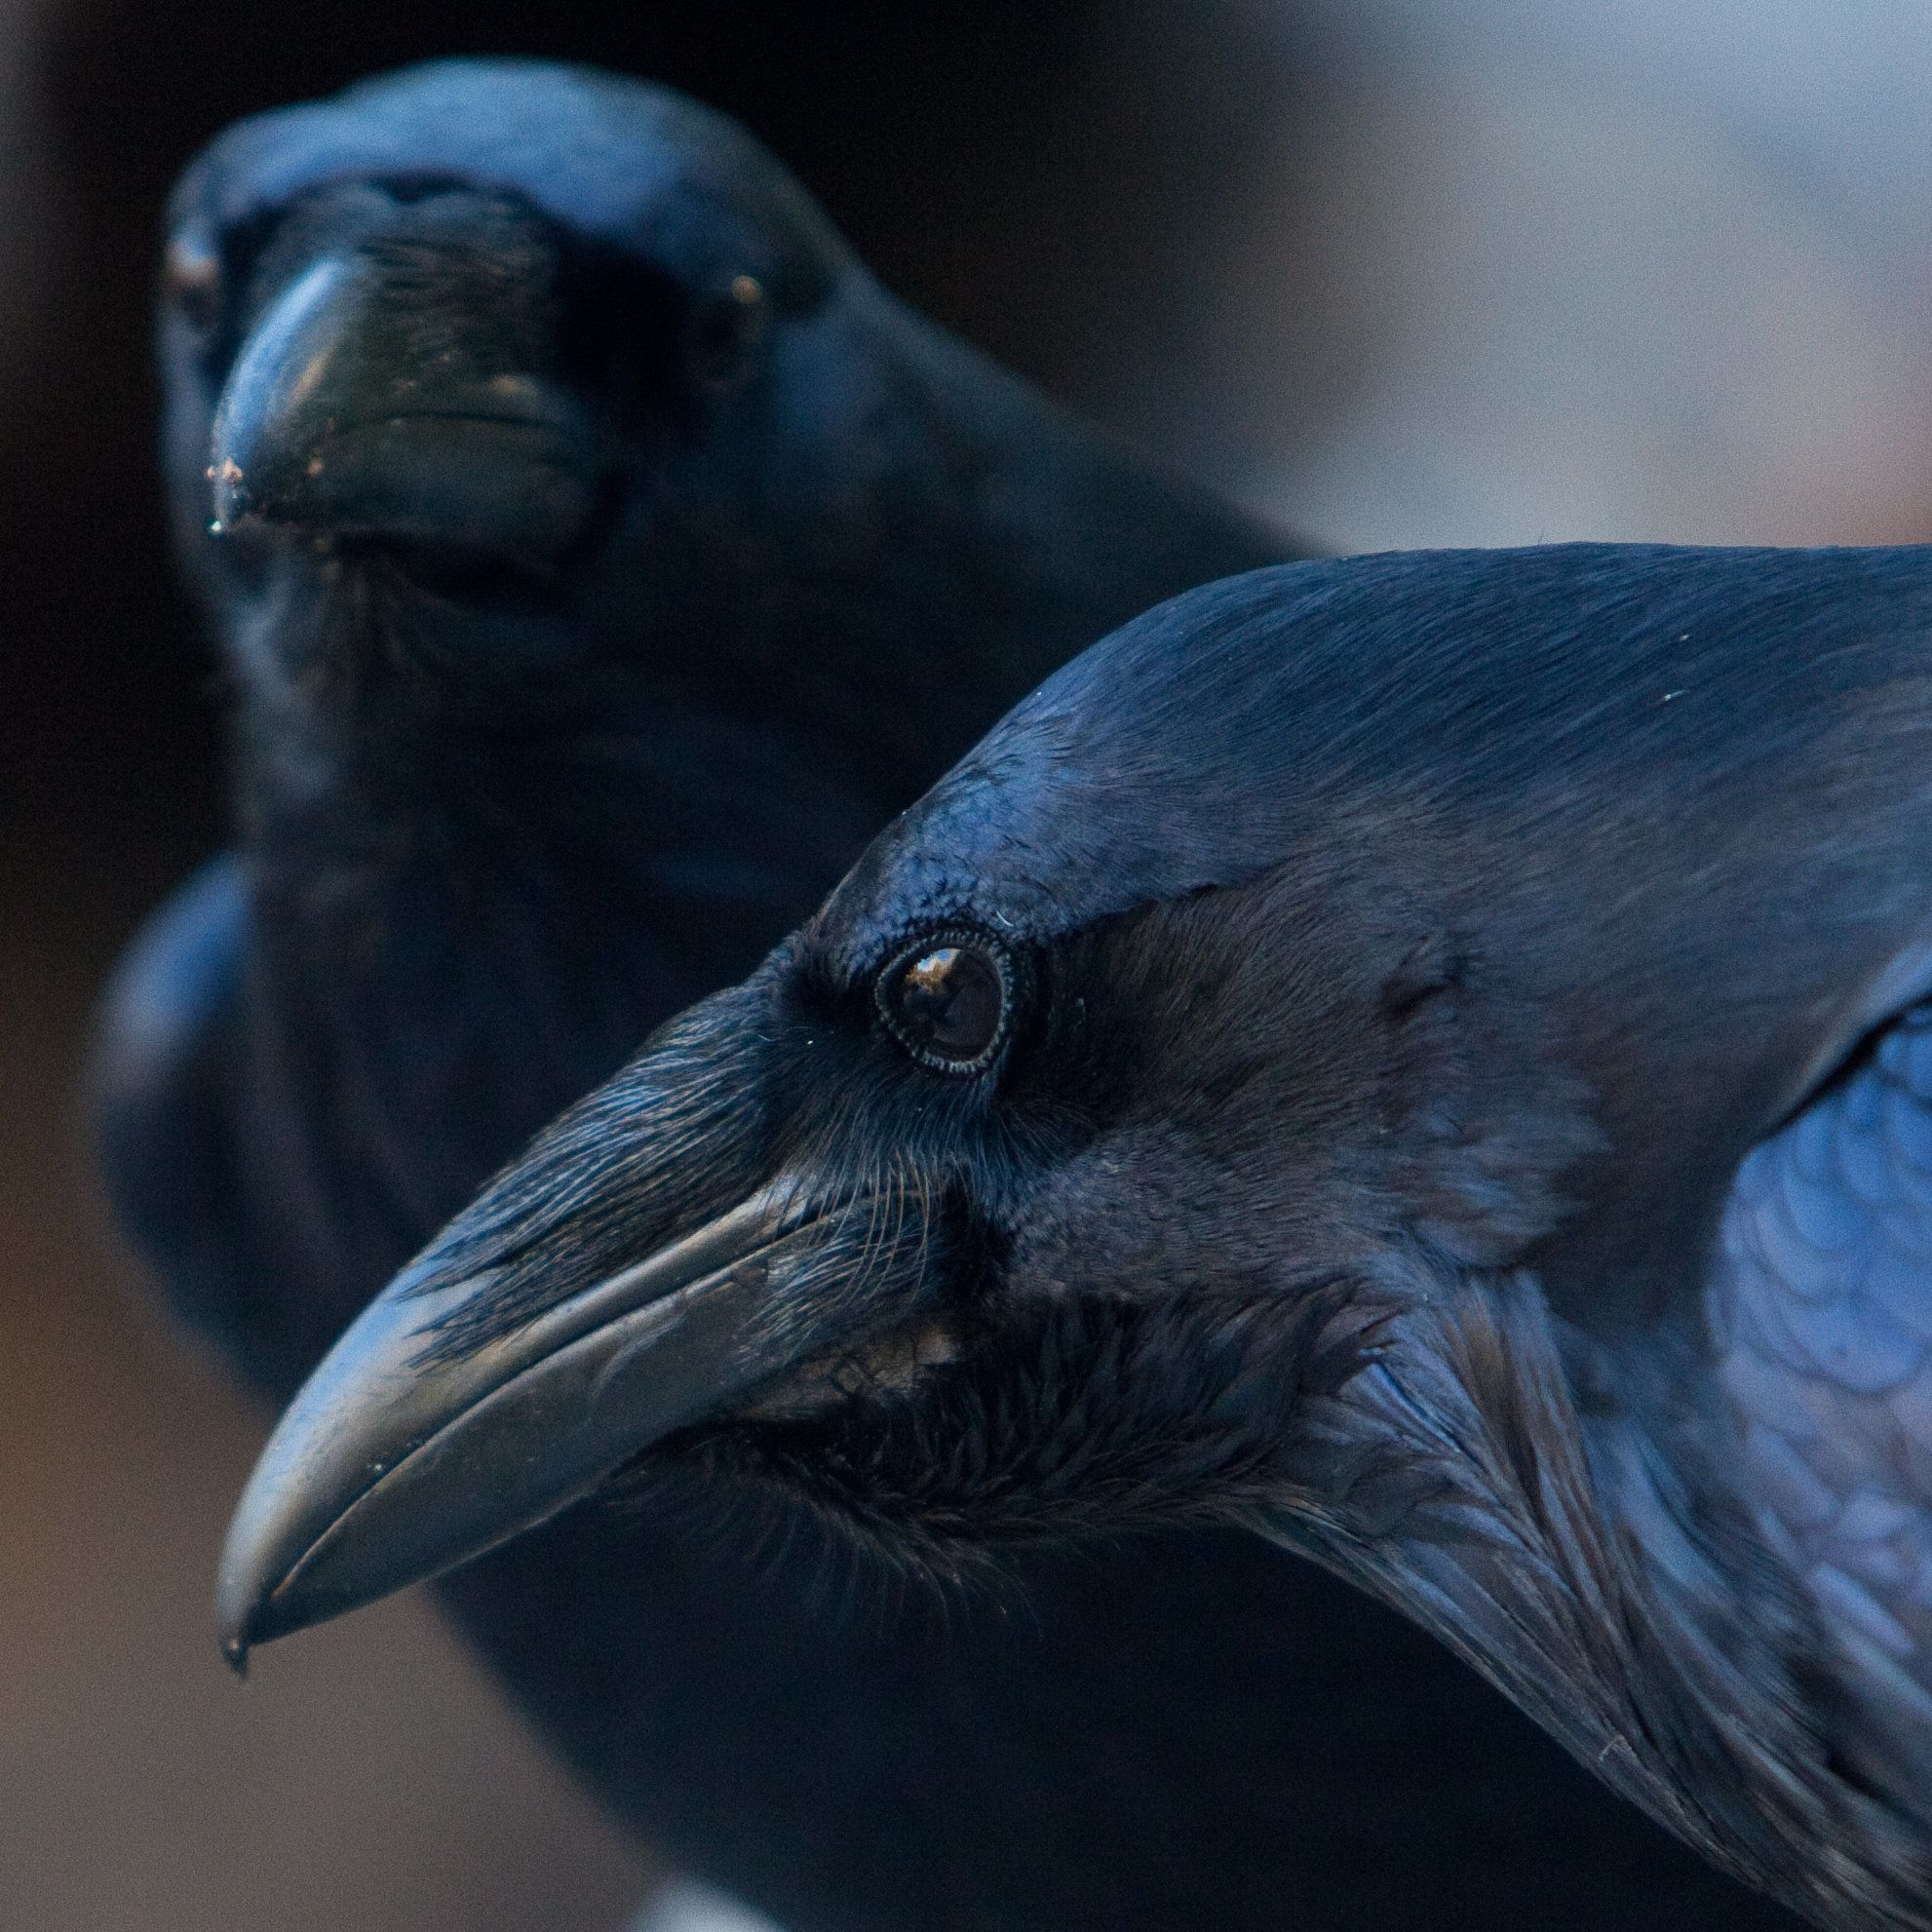 Ravens Can Plan Ahead, Similar to Humans and Great Apes